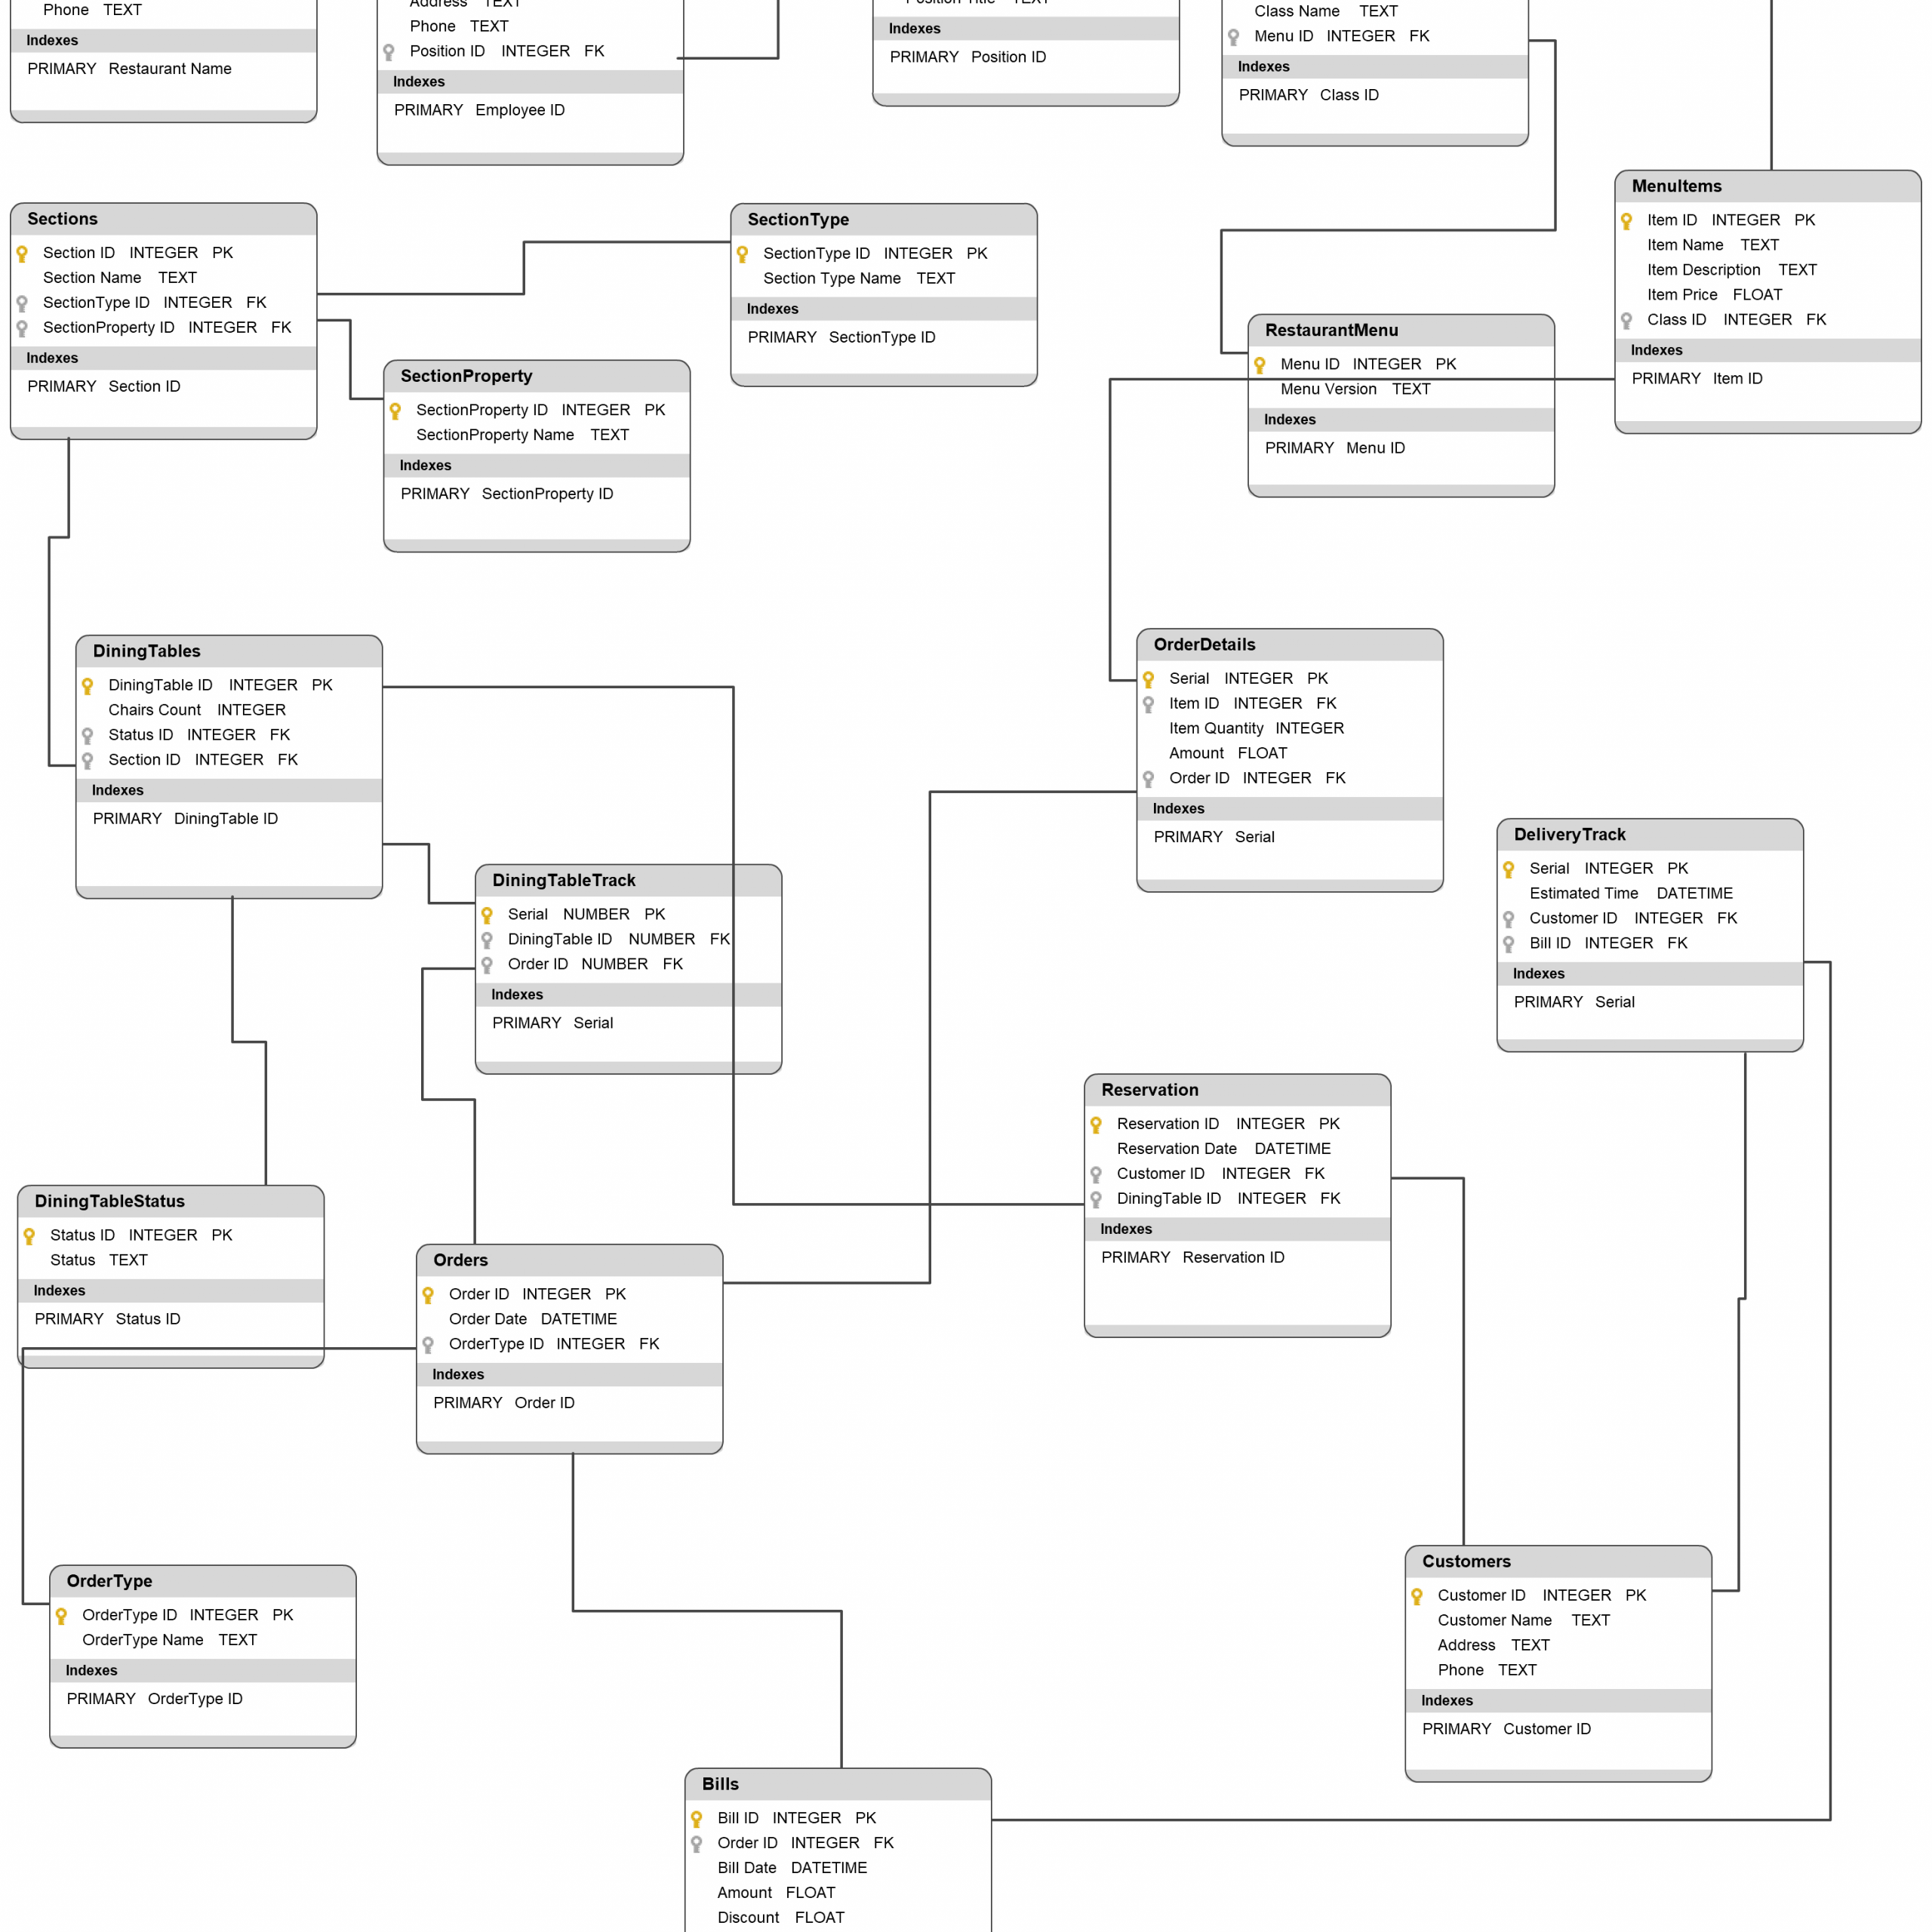 Restaurant Database Diagram - Database Diagram To Illustrate inside How To Create Database Design Diagram